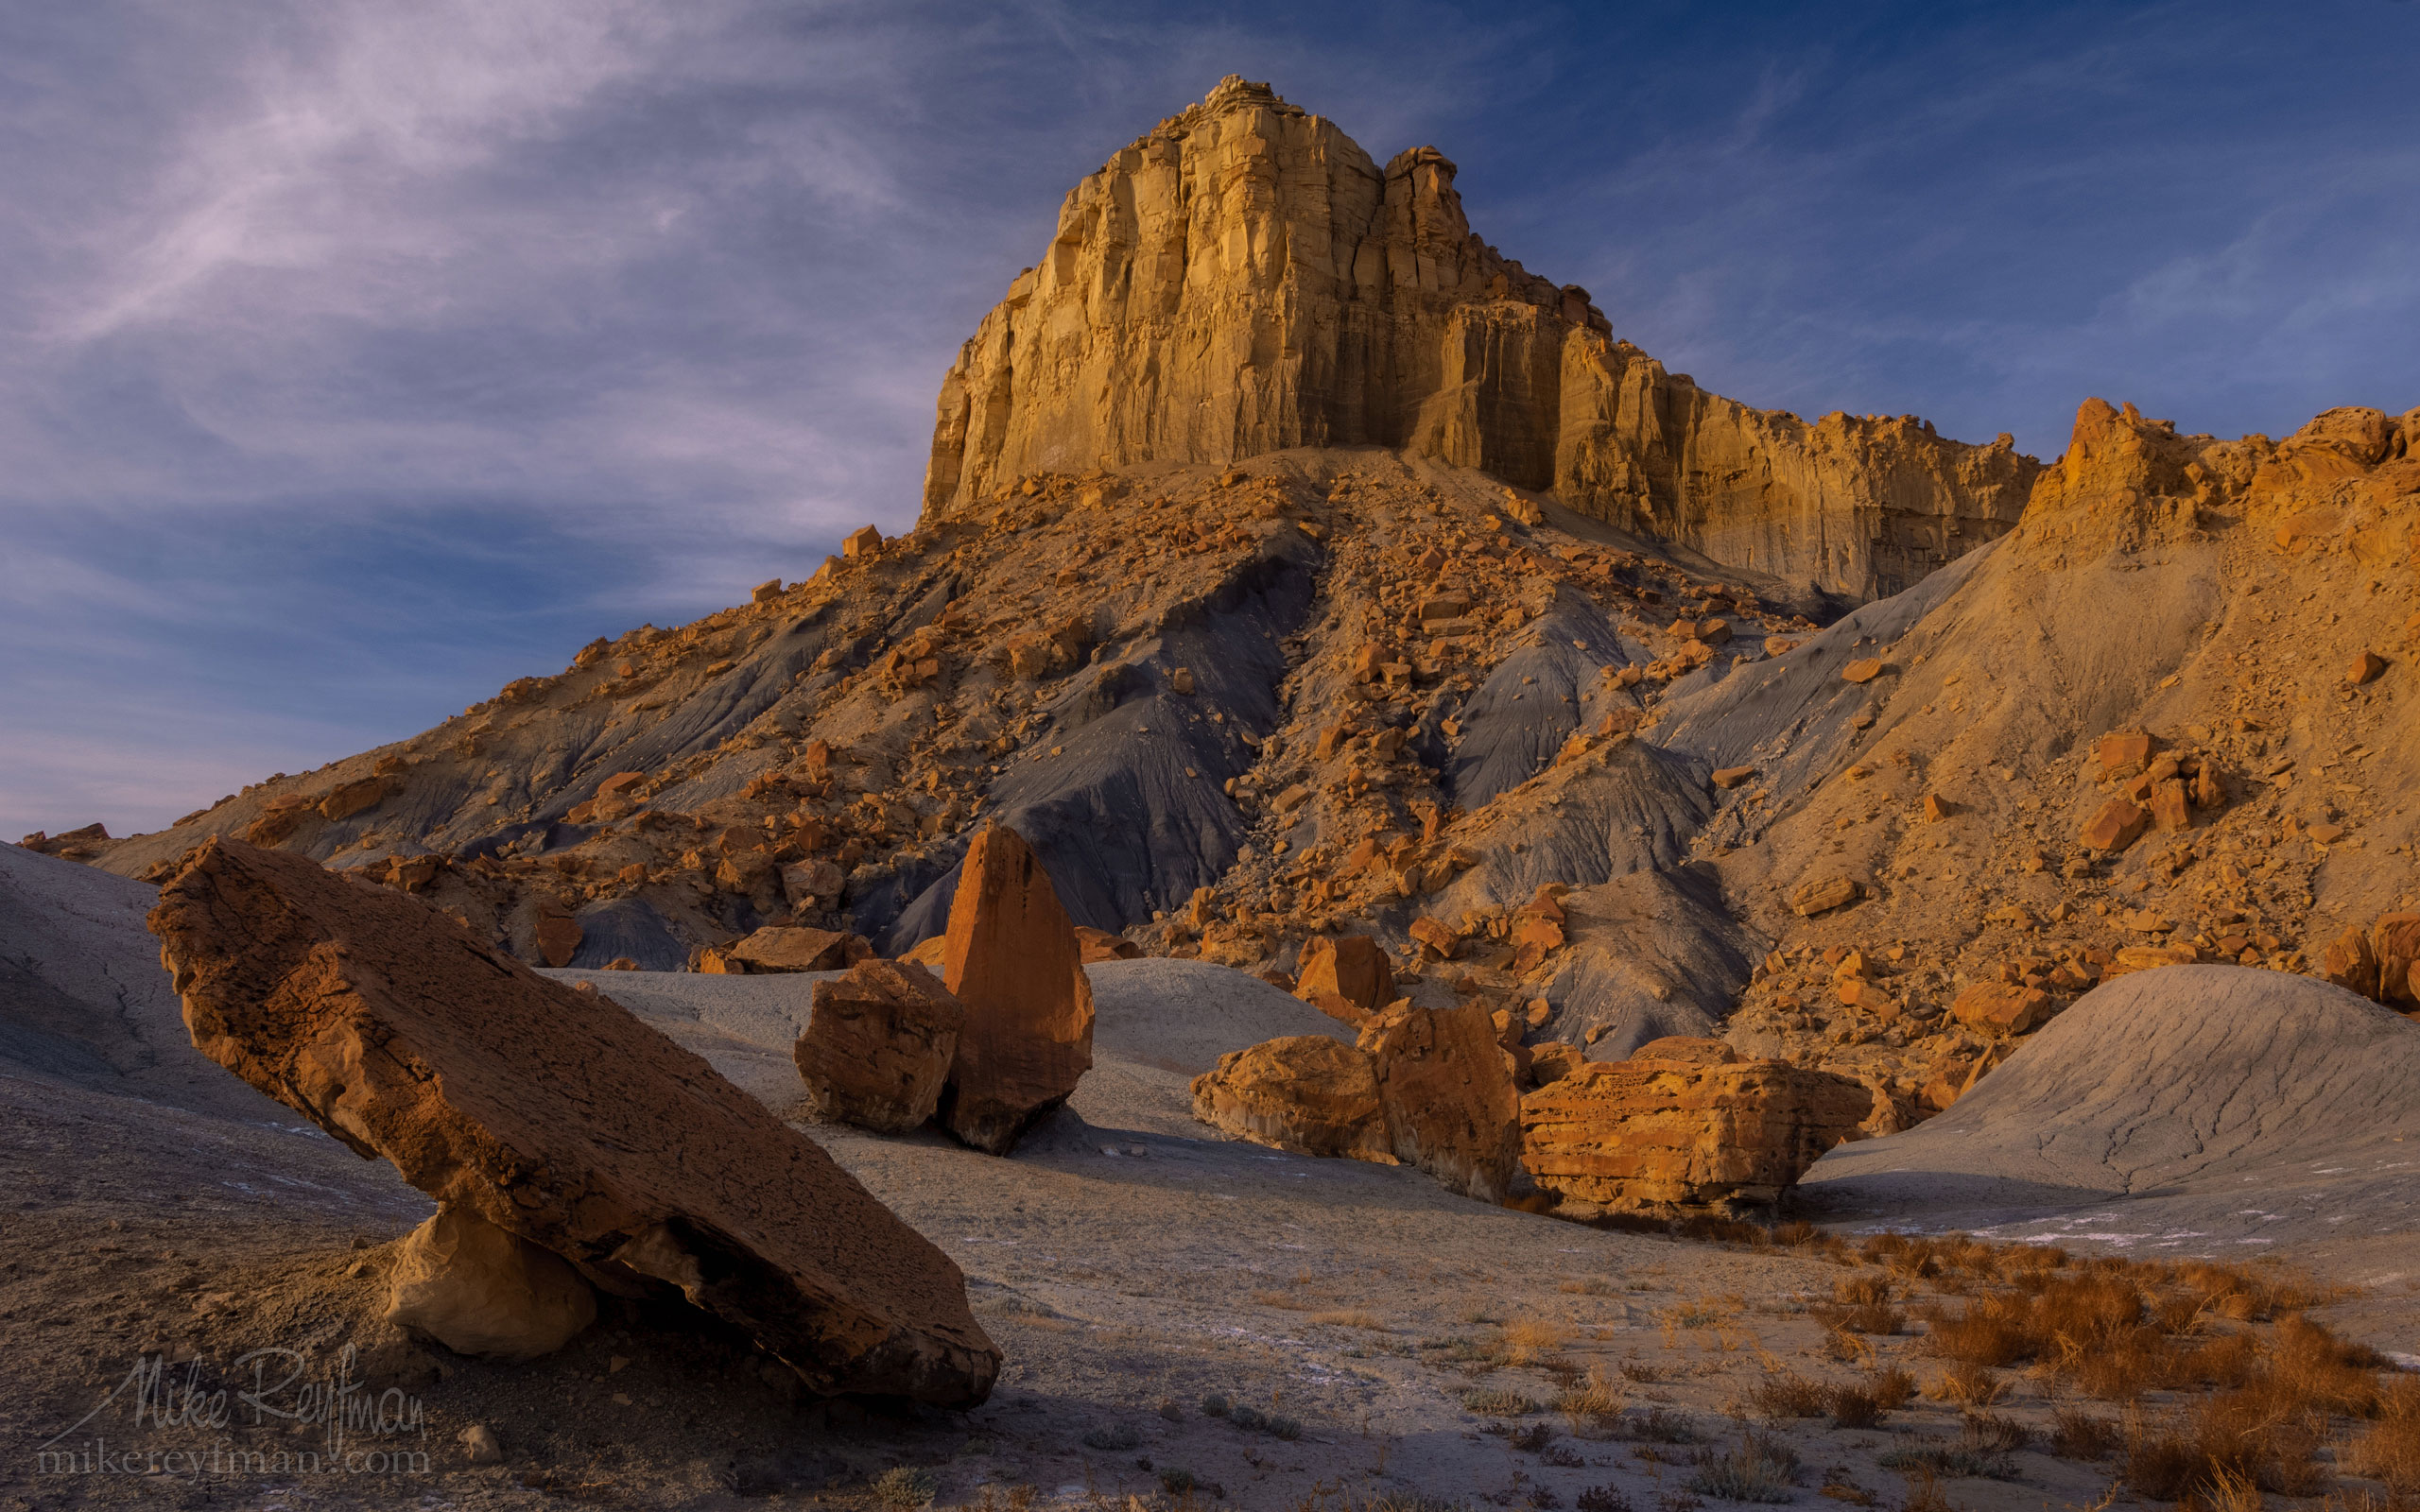 Nipple Bench at Staircase-Escalante Nat Monument from Smoky Mountain Road near Lake Powell, Glen Canyon Area, Utah, USA. 124-LP3_MER1050.jpg - Lake Powell, Glen Canyon NAR. Colorado and Sun Juan Rivers. Utah/Arizona, USA  - Mike Reyfman Photography